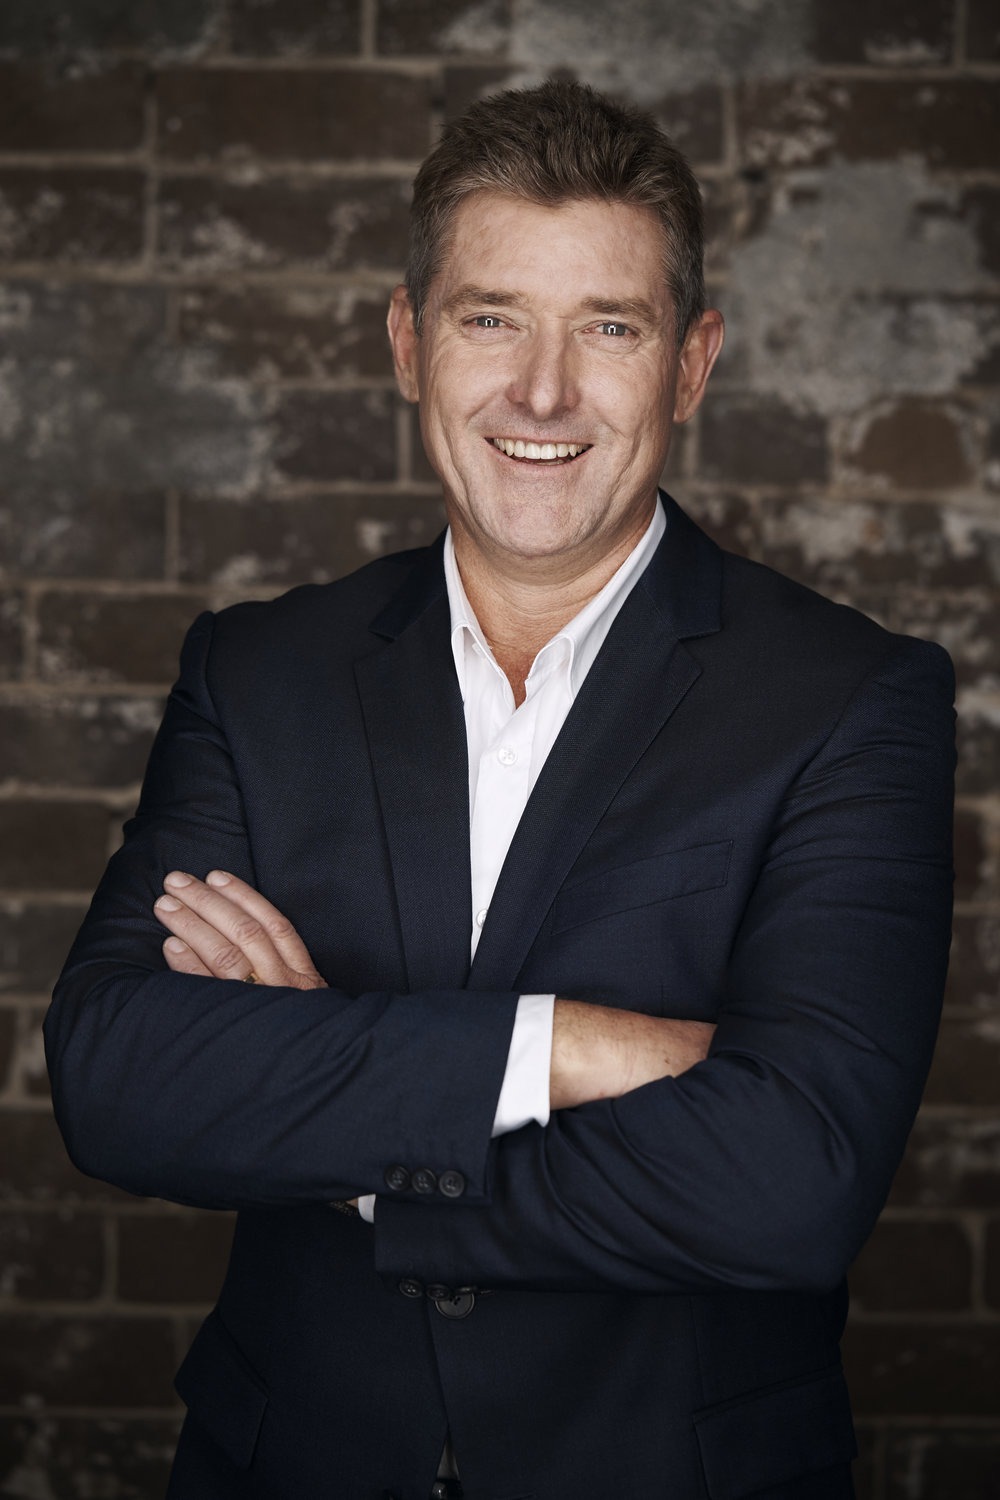 Shark Tank S2 Dr Glen Richards (4) Photo Credit - Network Ten.jpg